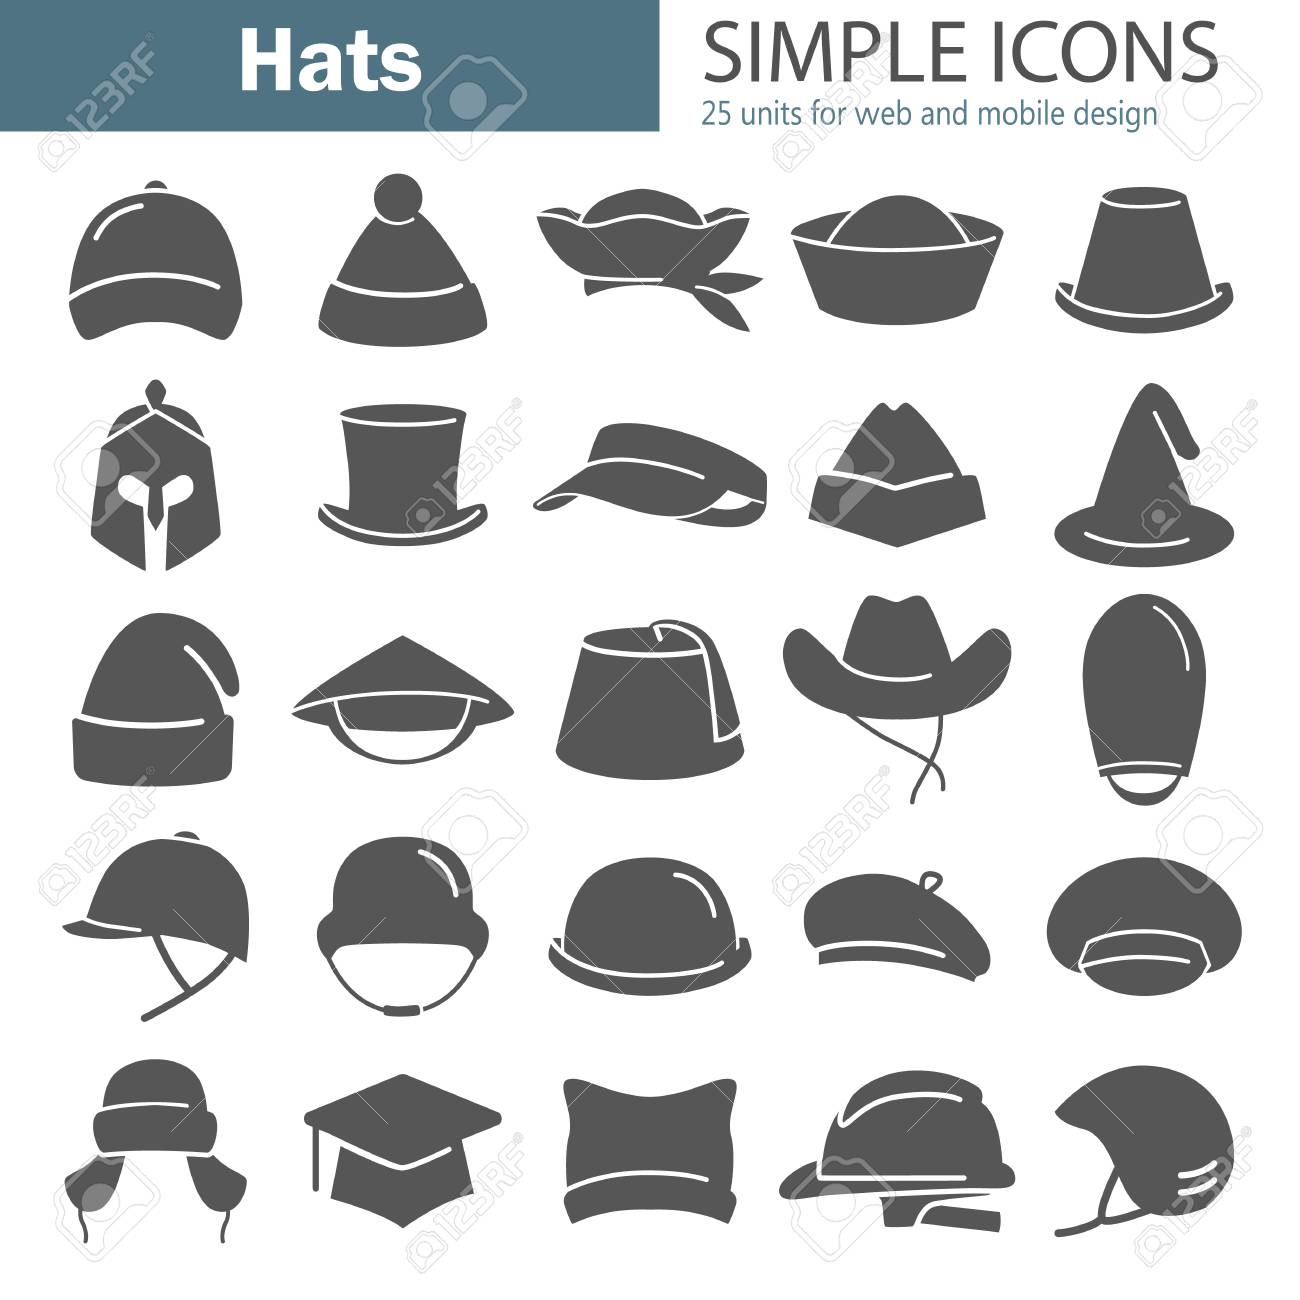 92c28504fcfa3 Different hats simple icon set isolated on plain background. Stock Vector -  96638667